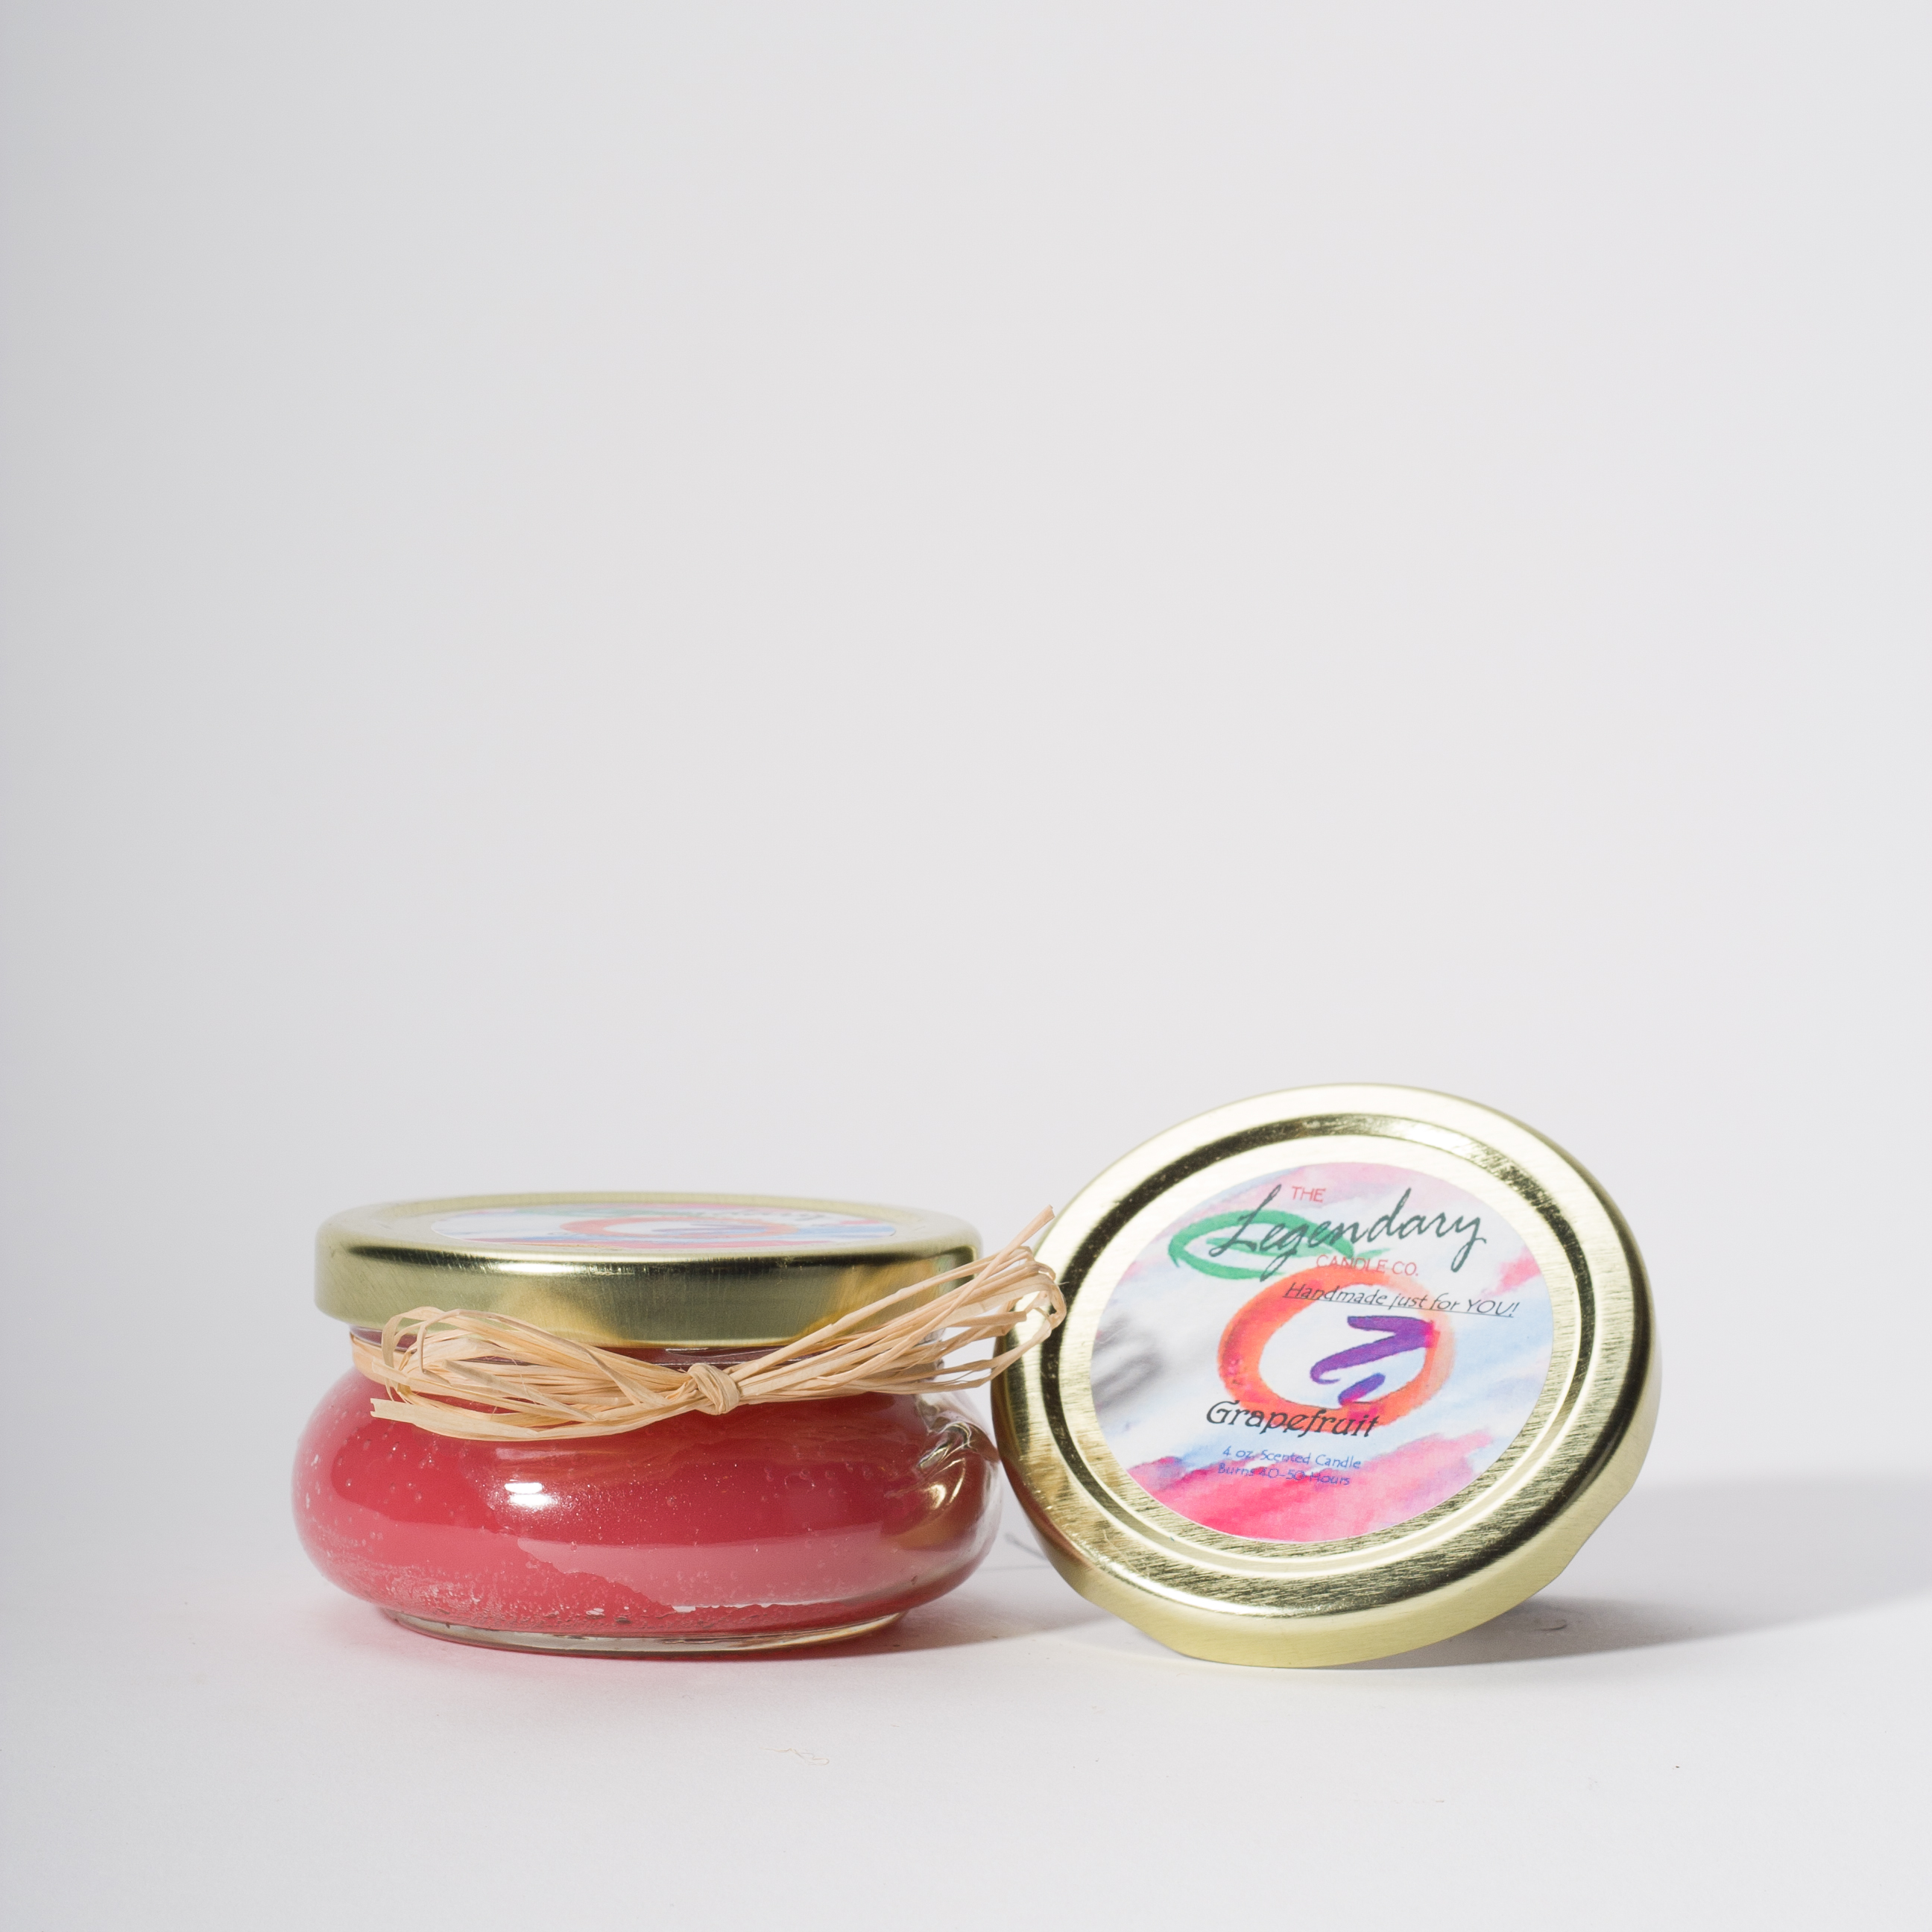 4 Ounce Fresh Grapefruit Scented Tureen Jar Candle